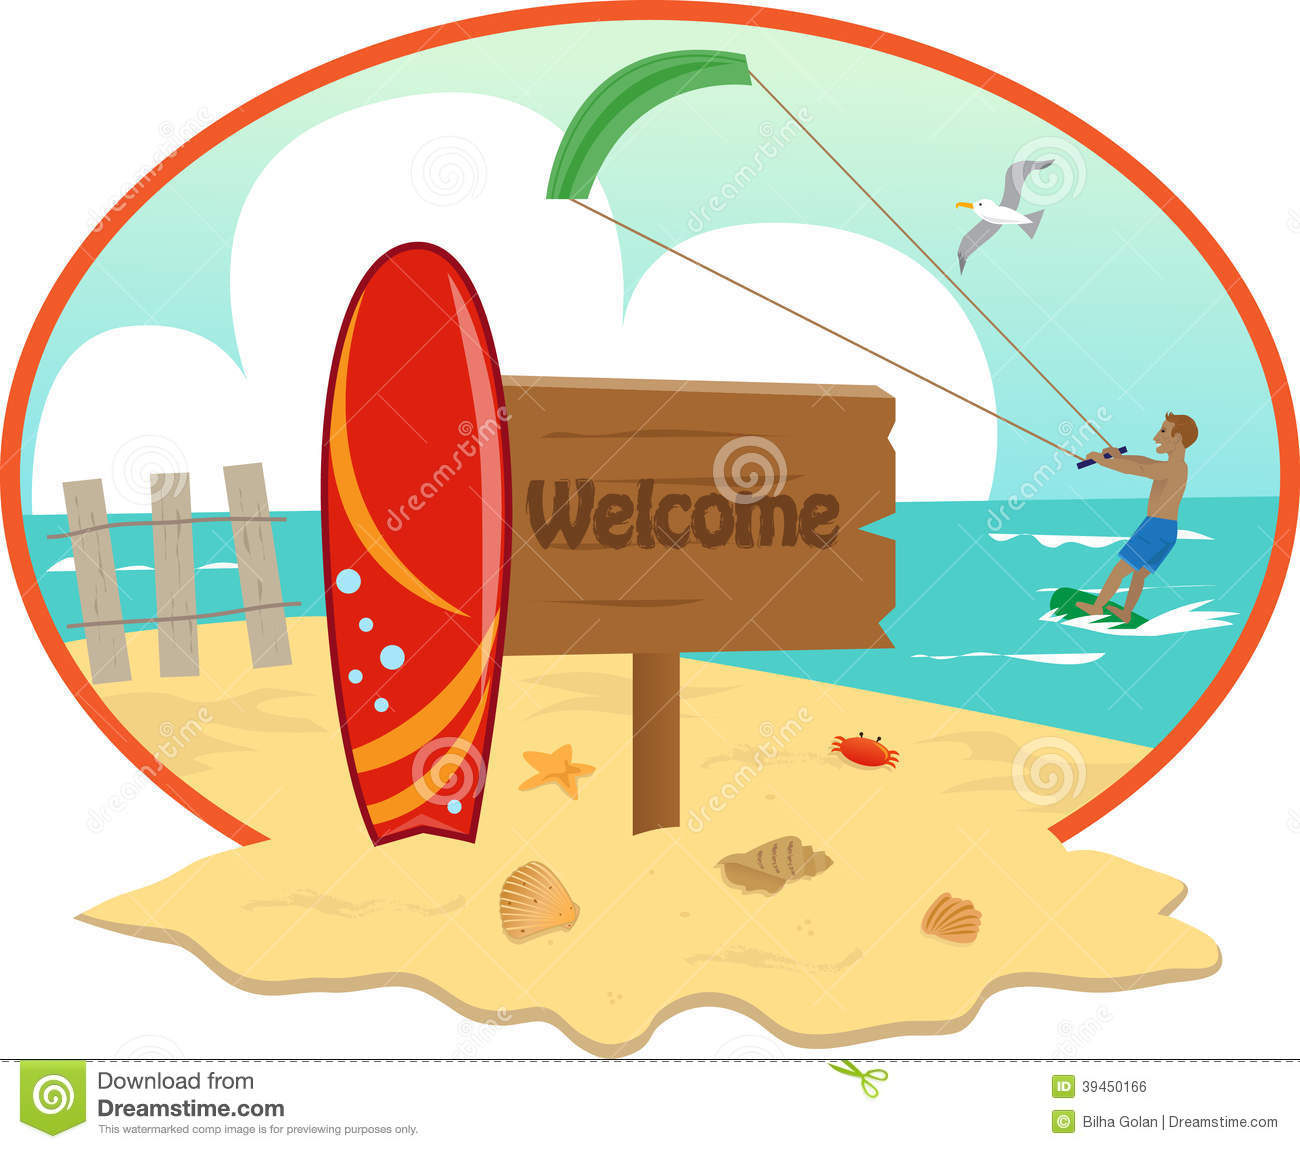 Beach Stock Vector Image Of Surfboard Surfer Crab 39450166